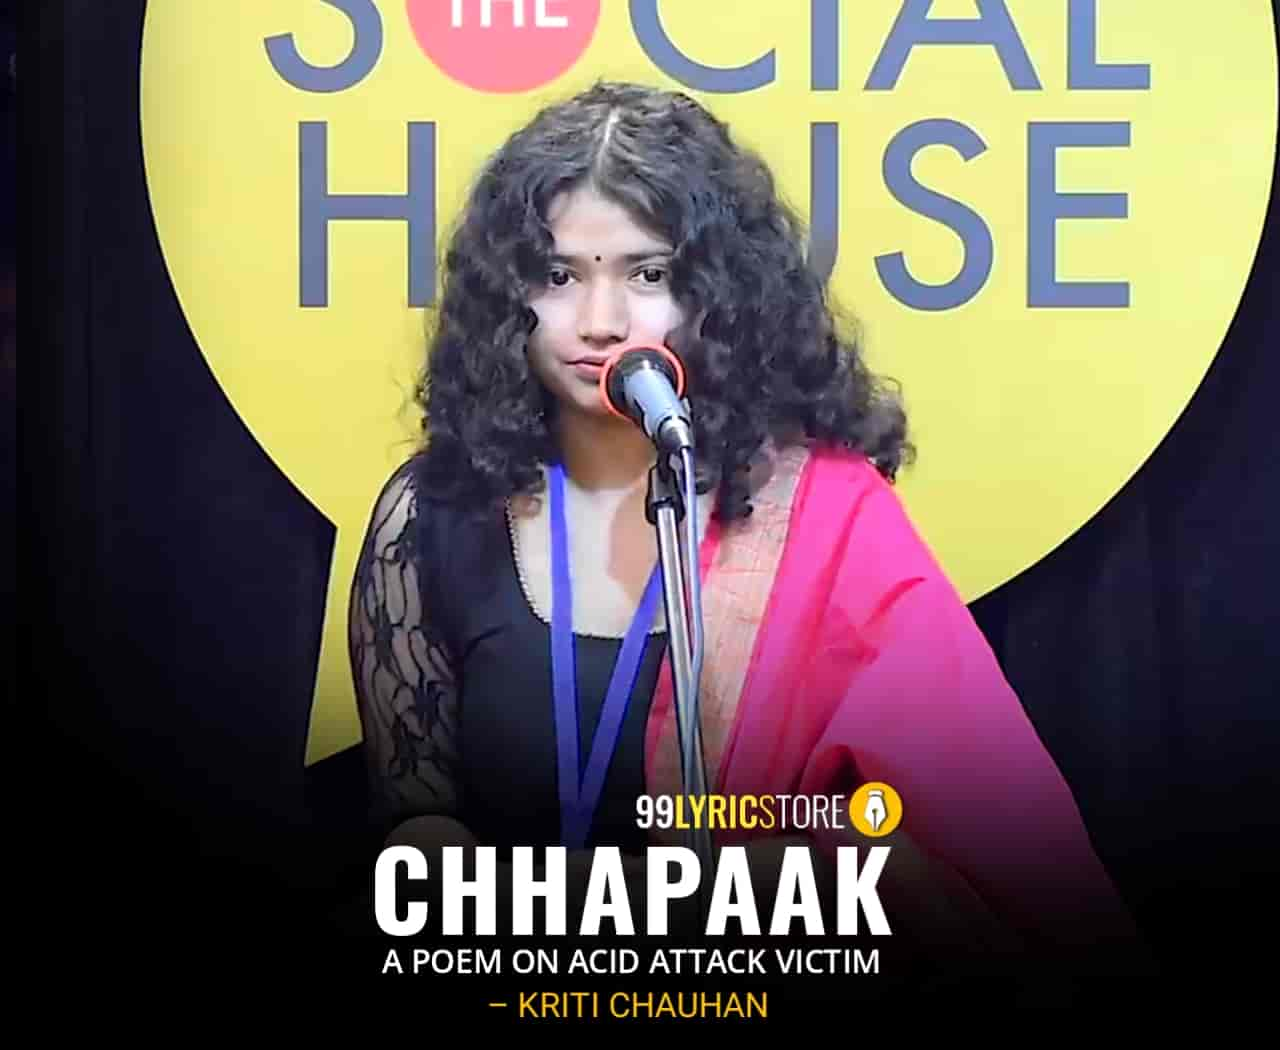 Chhapaak - A Poem on Acid Attack Victim Image, written by Kriti Chauhan